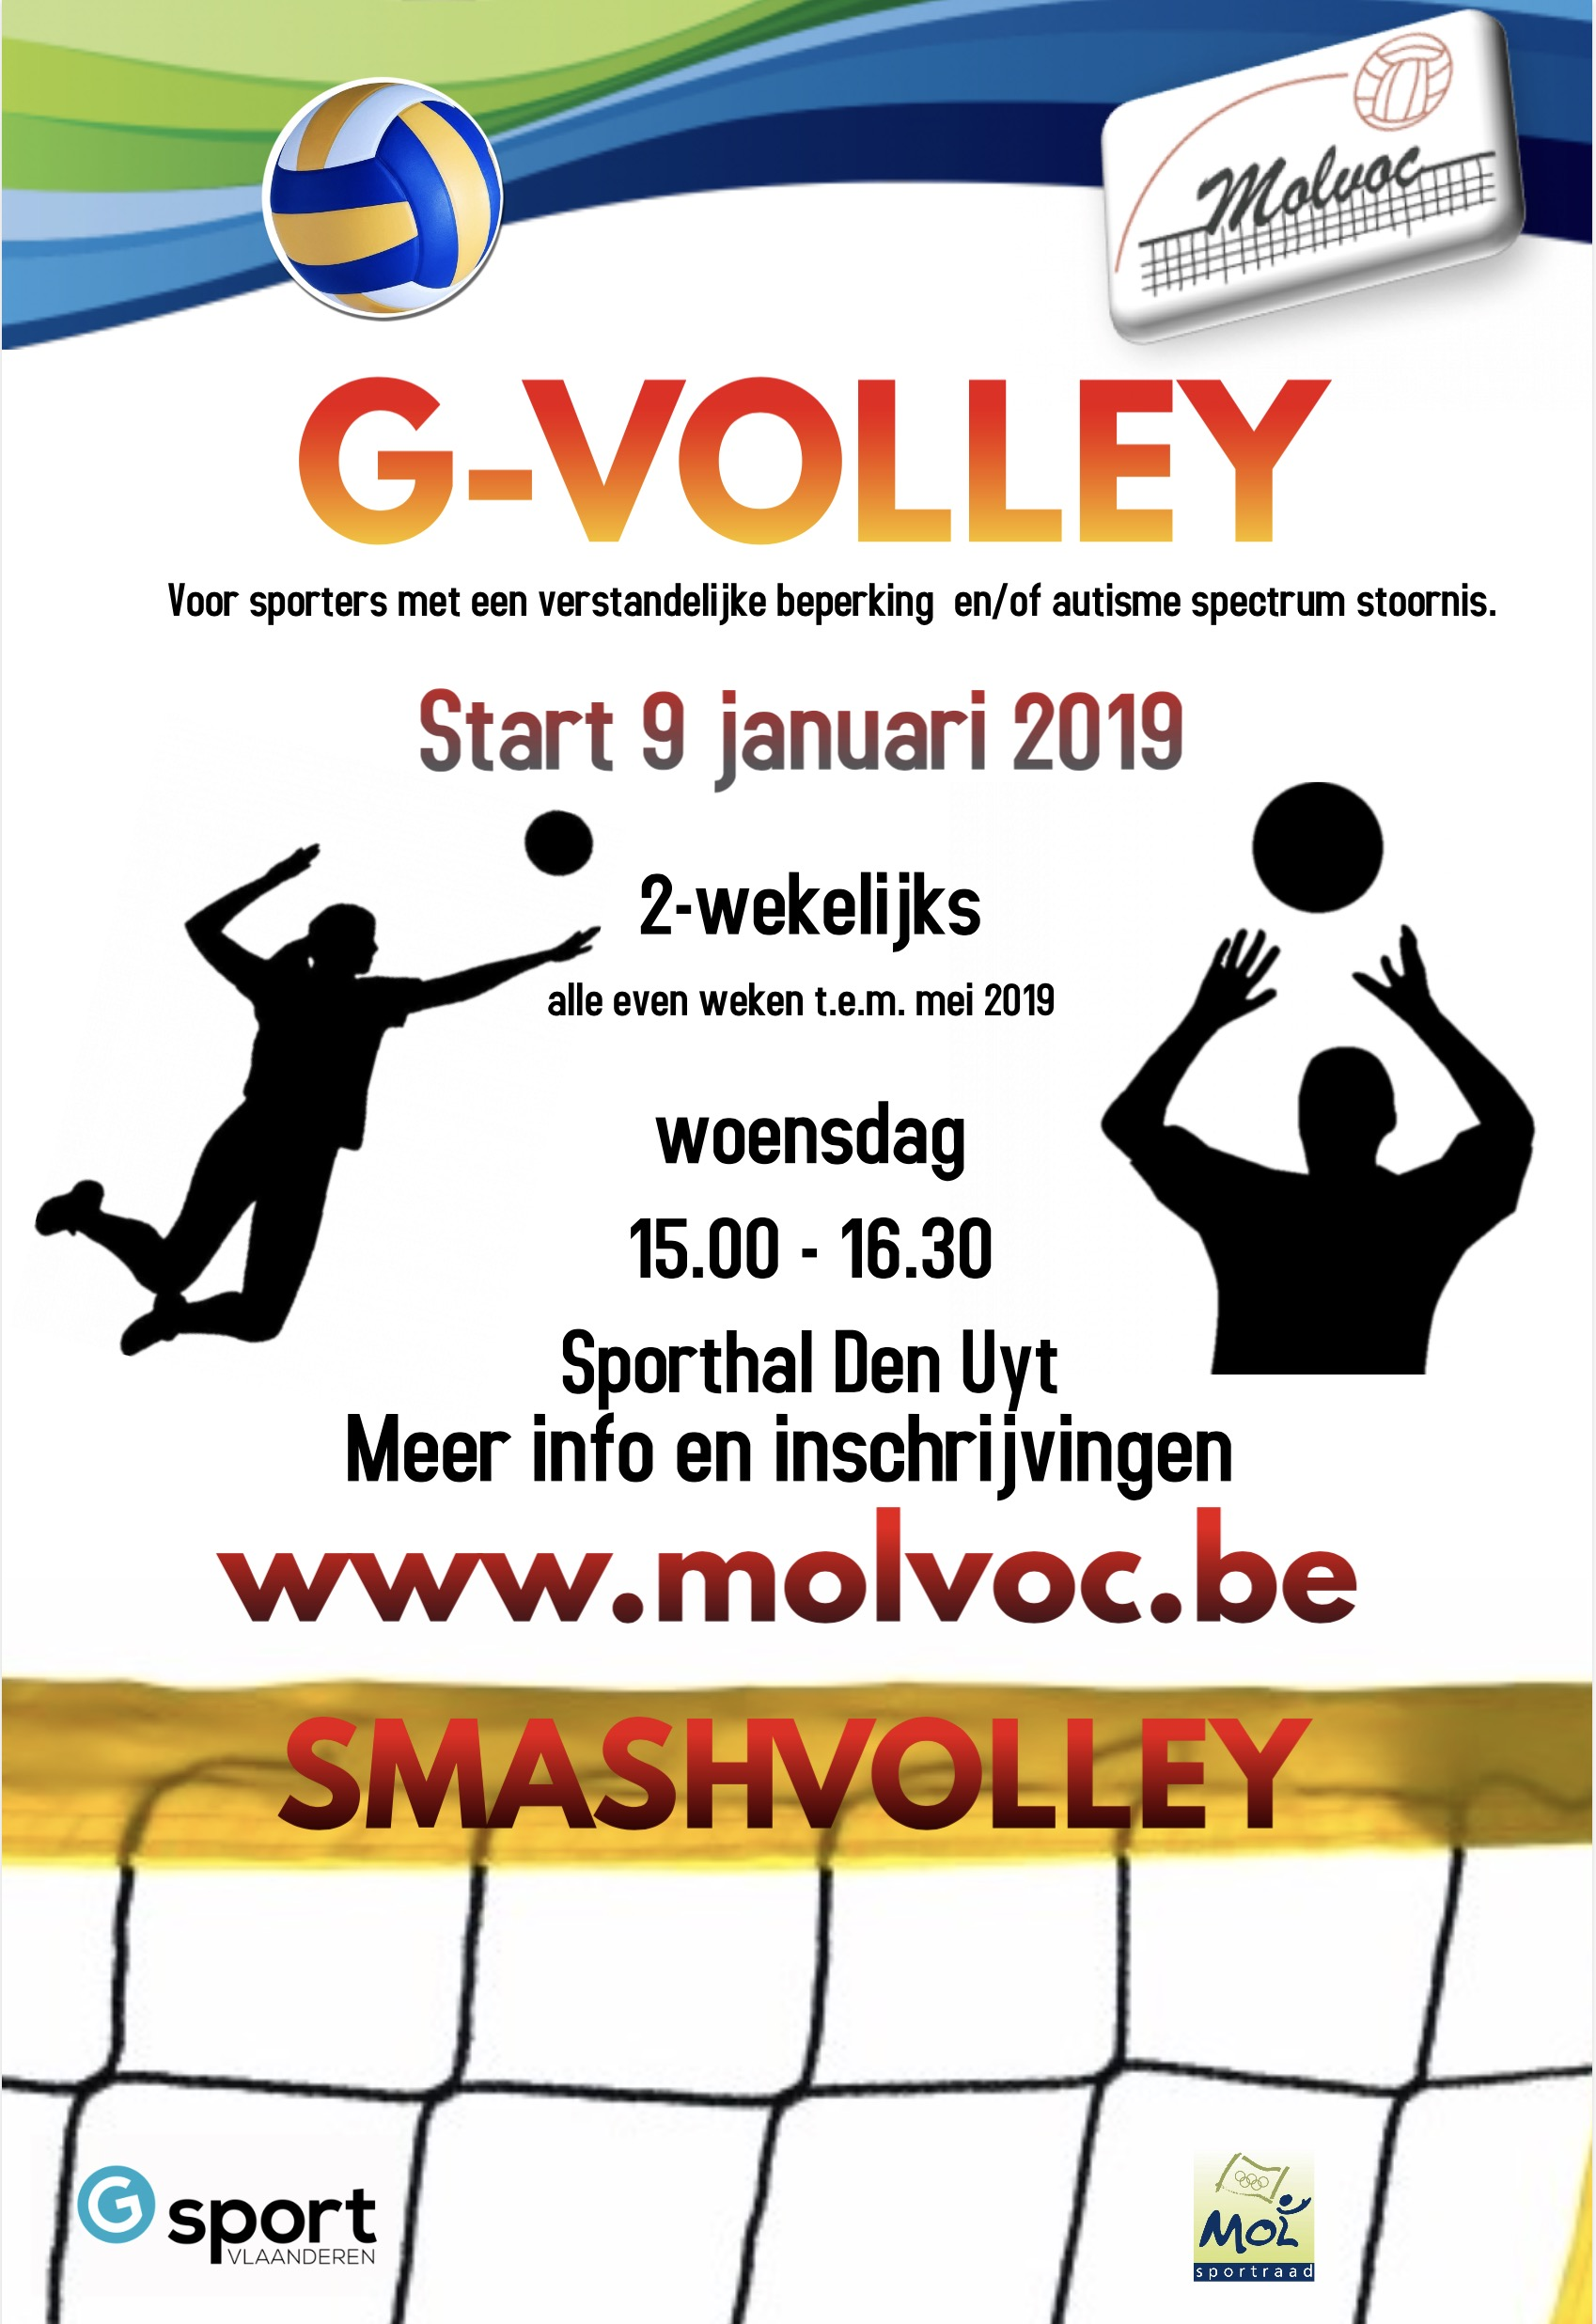 G-volley